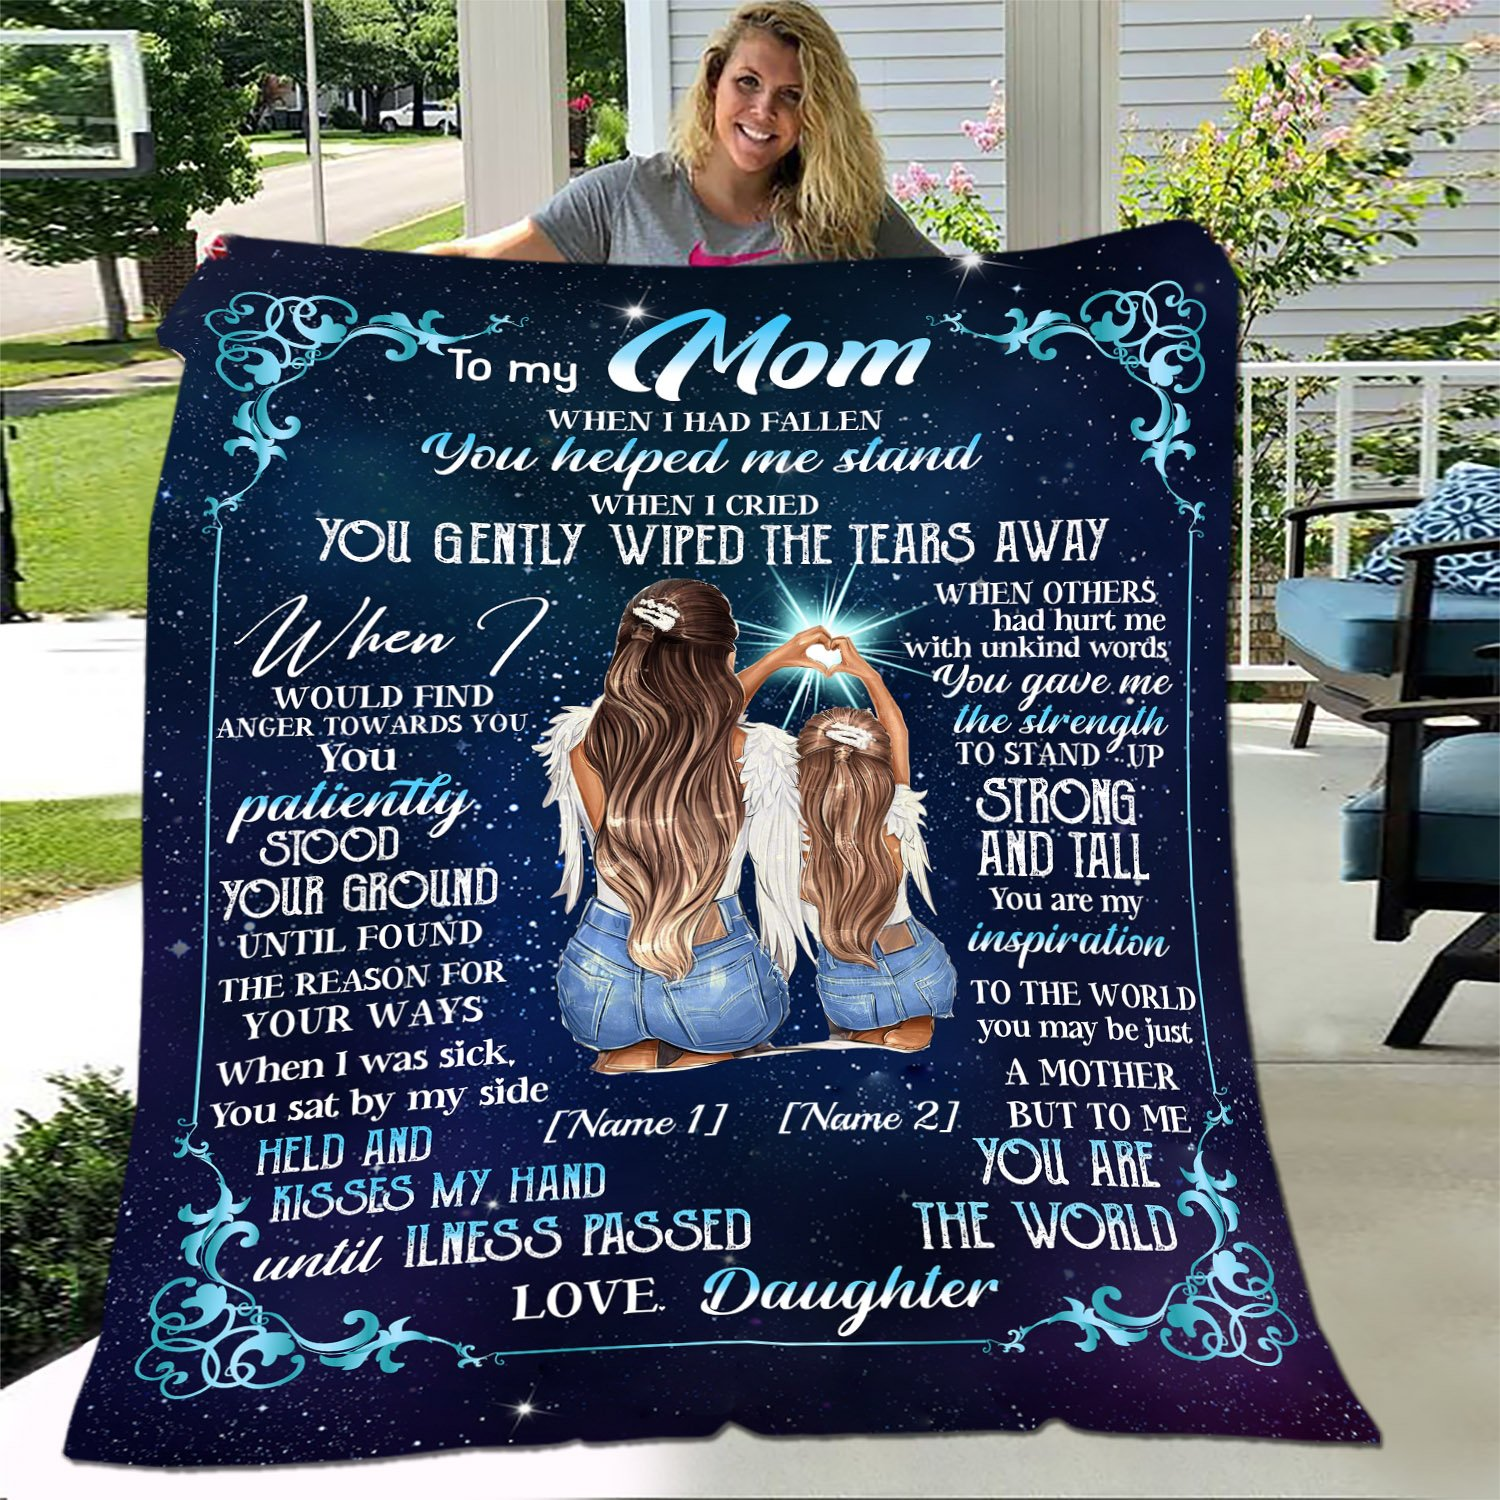 Personalized Fleece Blanket When I Had Fallen You Helped Me Stand Mother gift